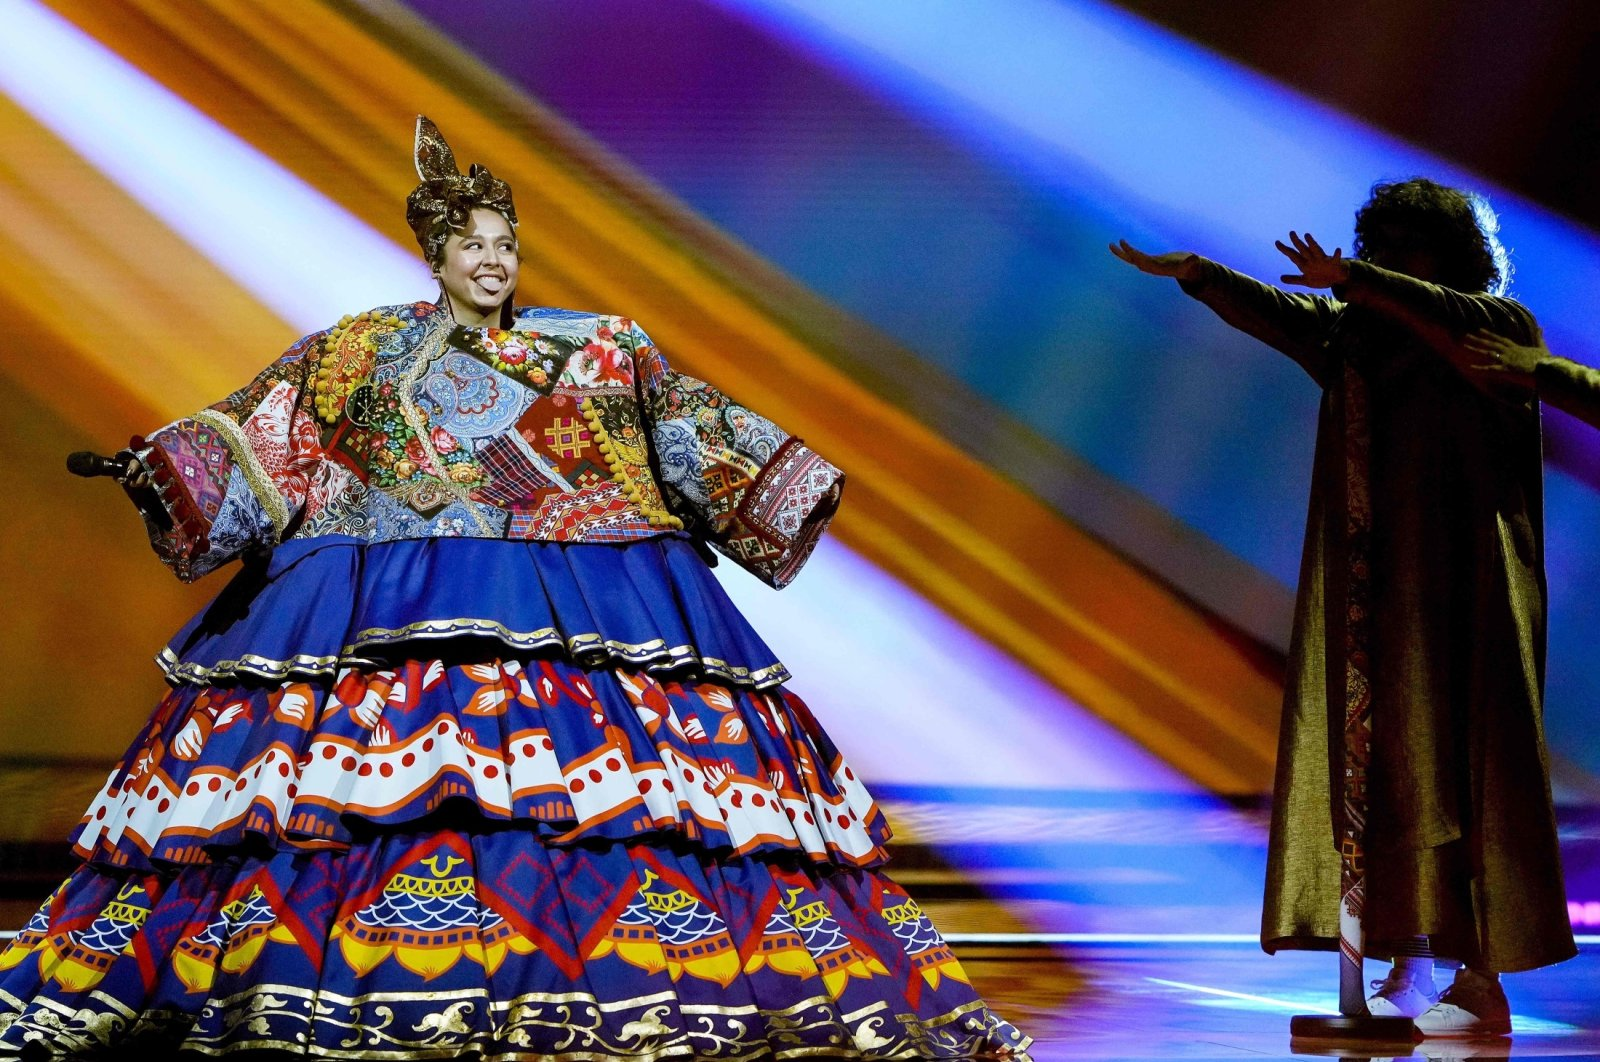 """Manizha from Russia performs with the song """"Russian Woman"""" during the dress rehearsal of the final of the Eurovision Song Contest in Rotterdam, The Netherlands, May 21, 2021. (AFP Photo)"""